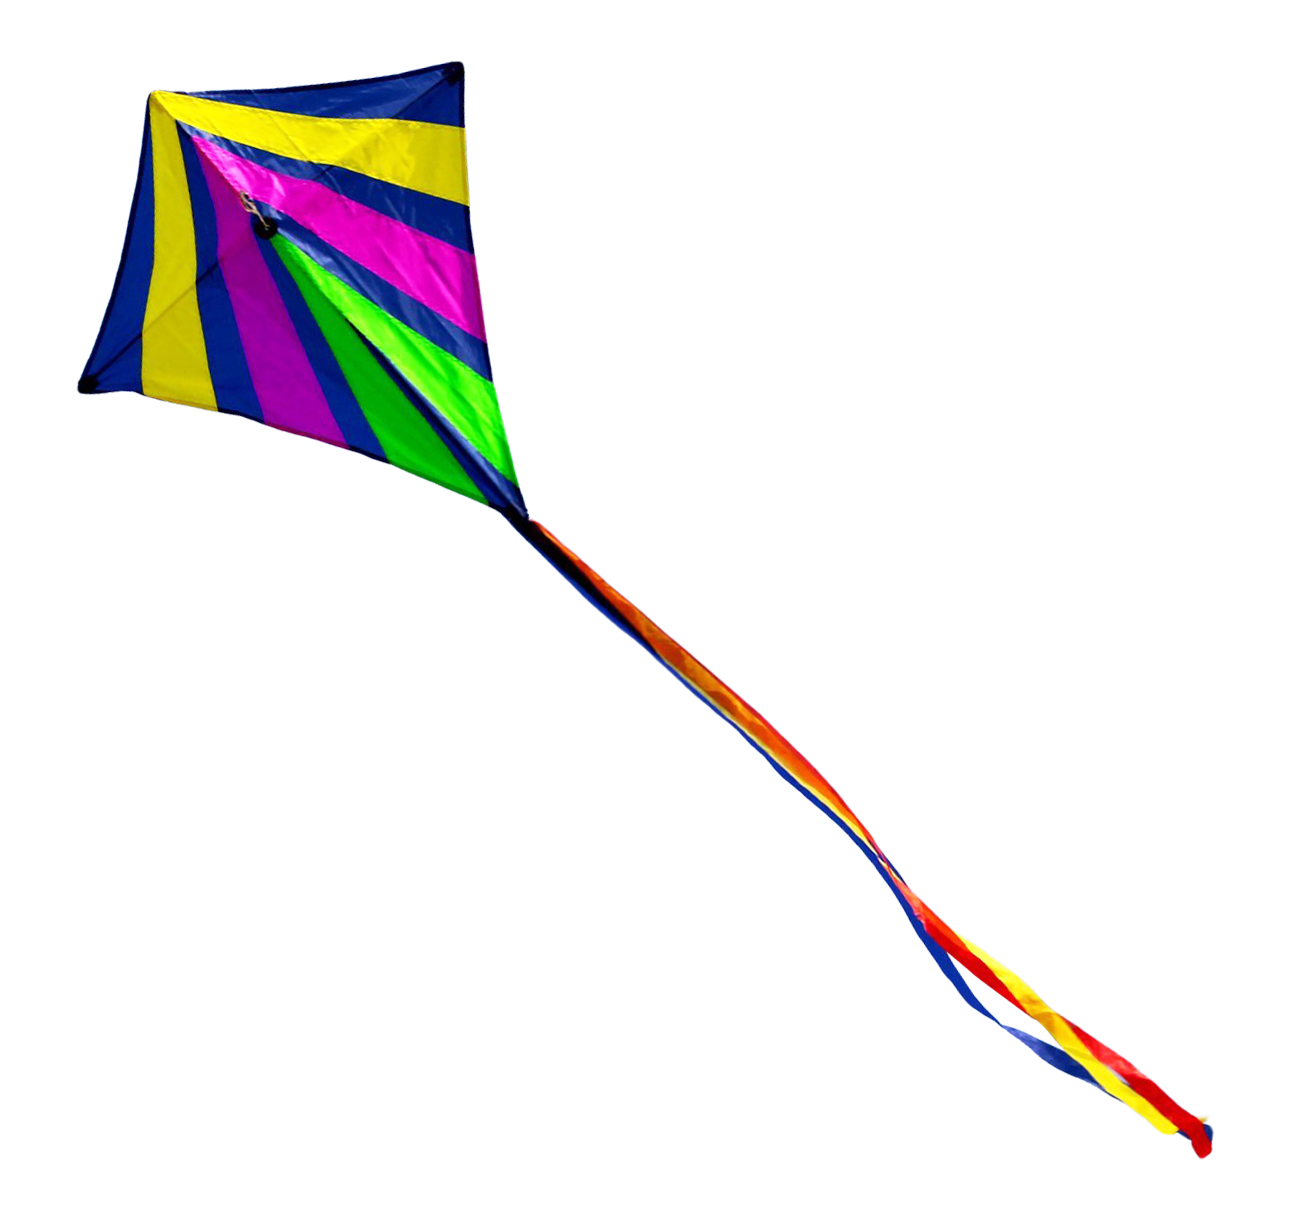 Kite PNG HD Images - 138908